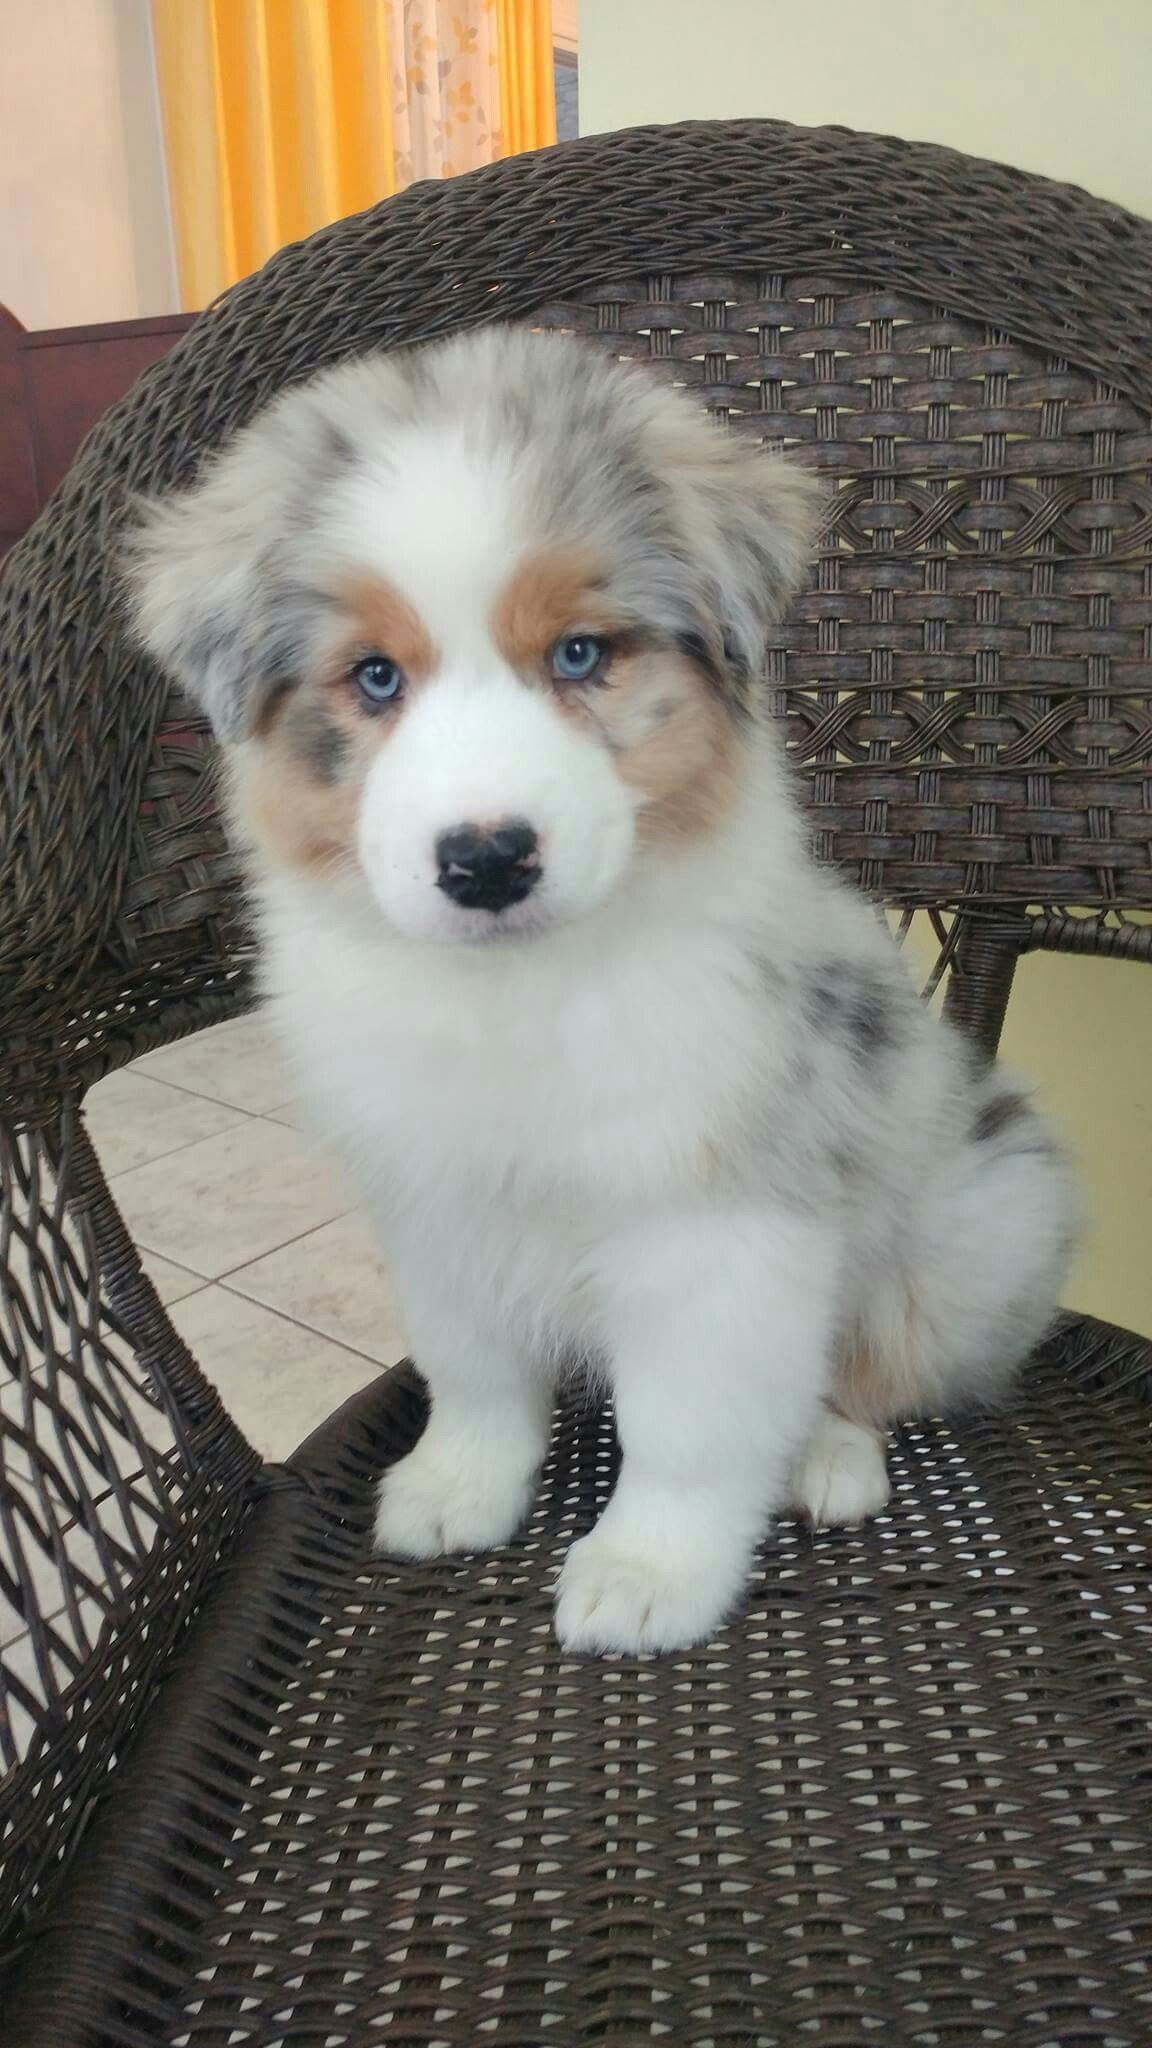 Australian Shepherd Puppy Australianshepherdpuppy Cute Baby